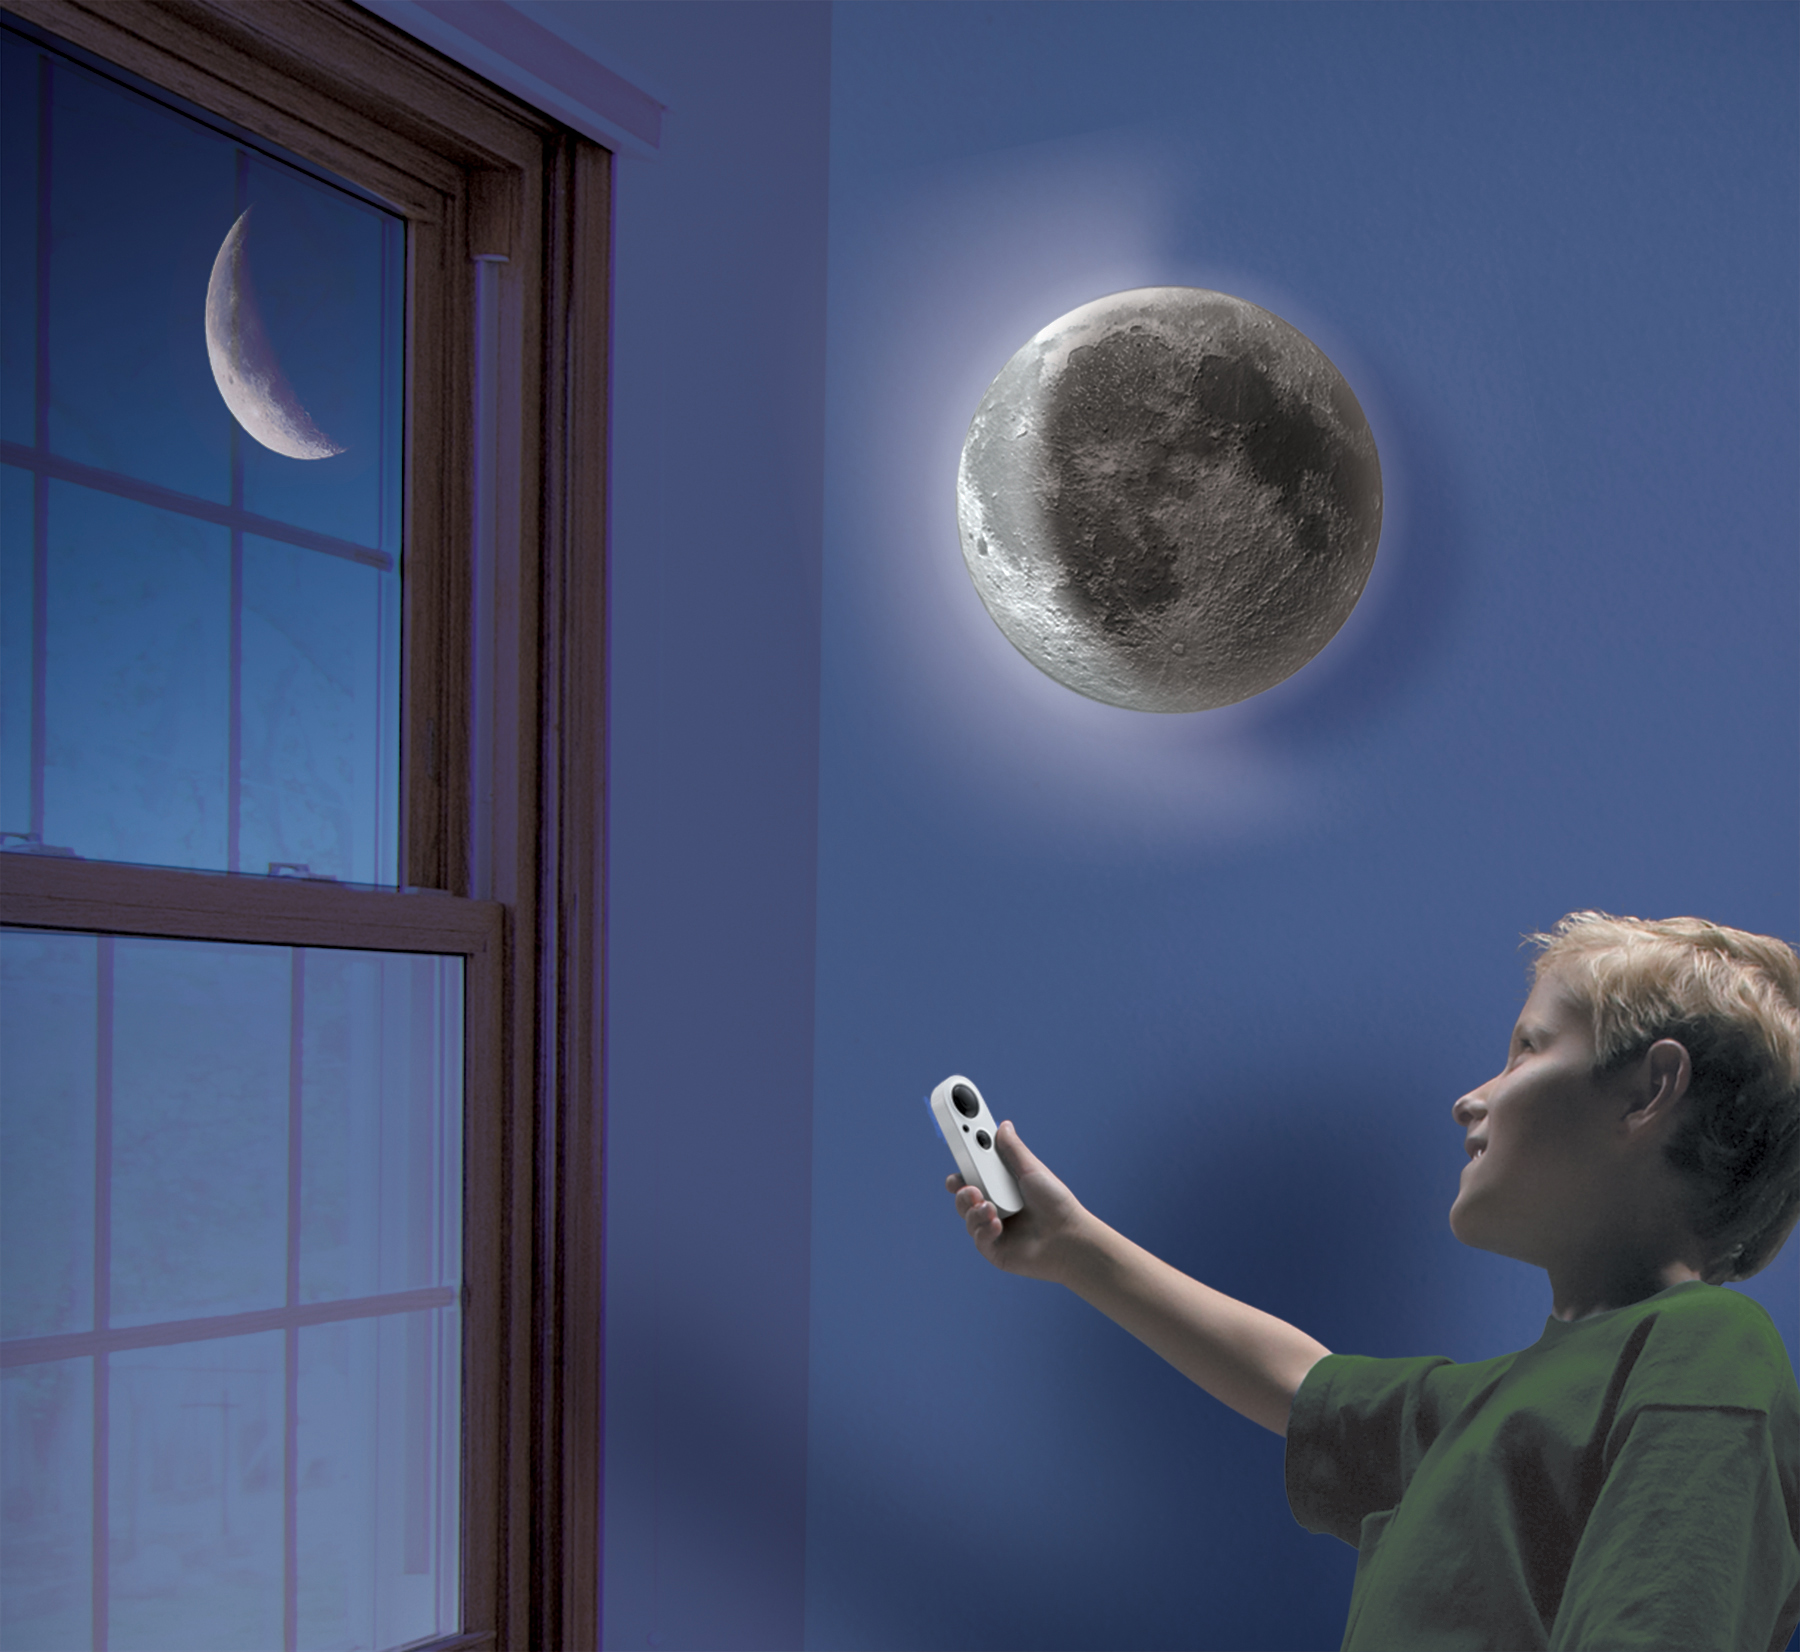 Light up the night with Uncle Milton's 'Moon in My Room' for 40% off this Prime Day